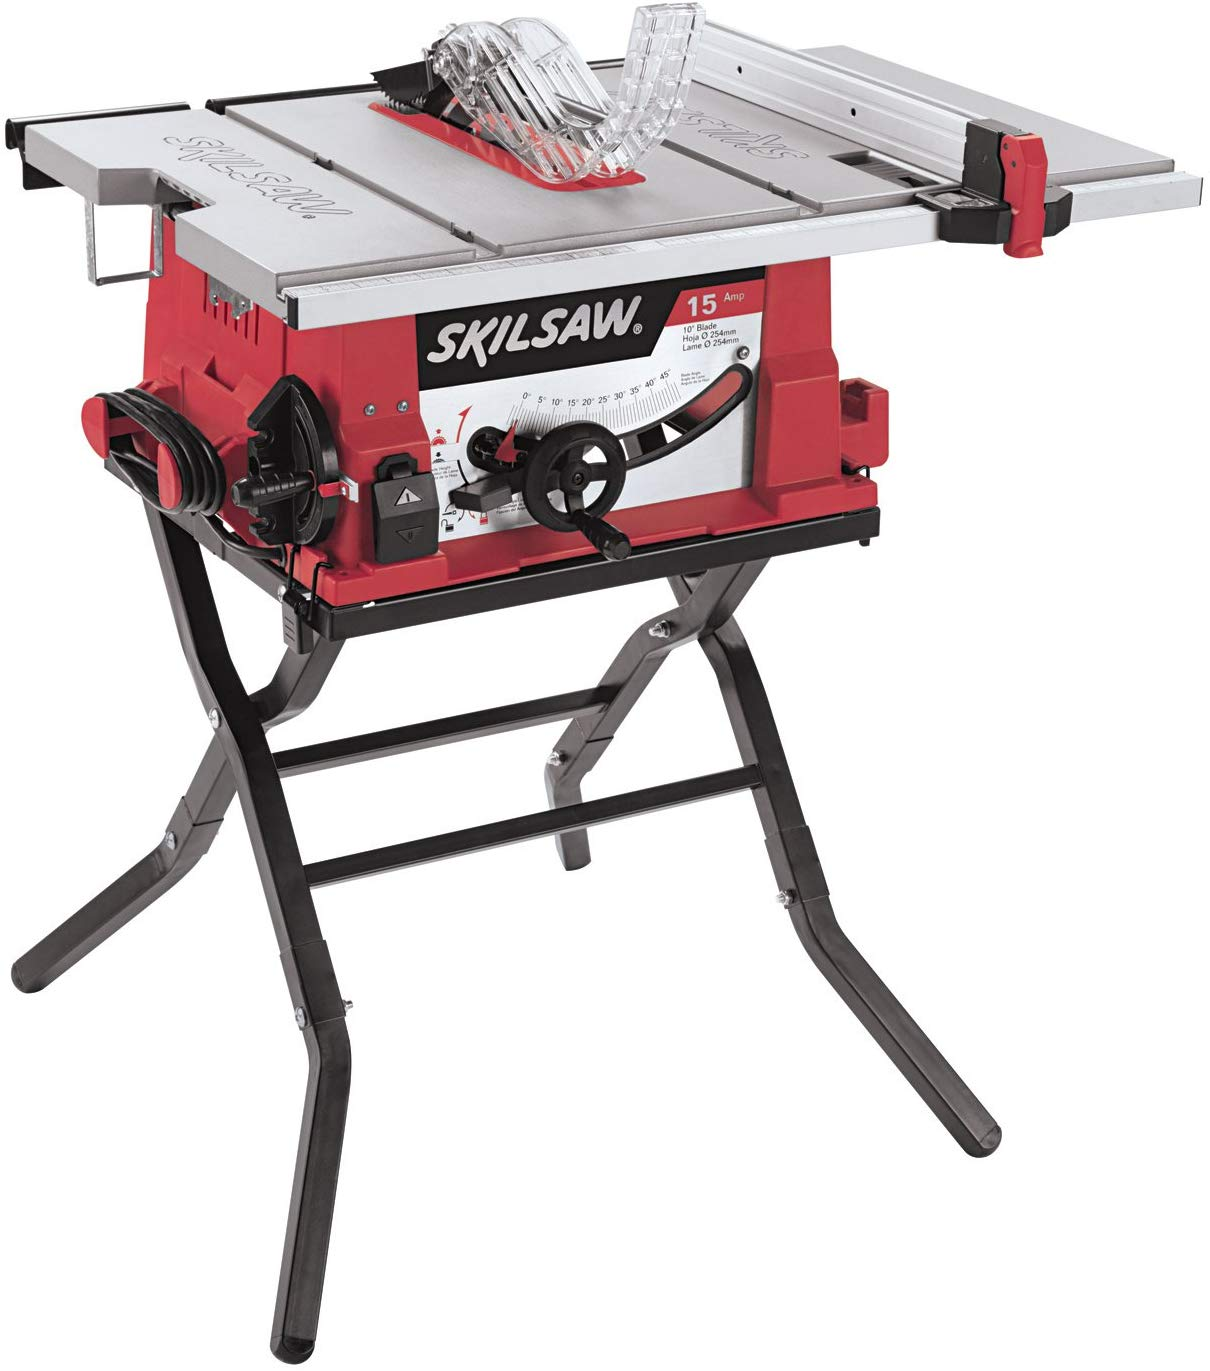 SKIL 3410-02 Table Saw with Folding Table - Woodworking Saws